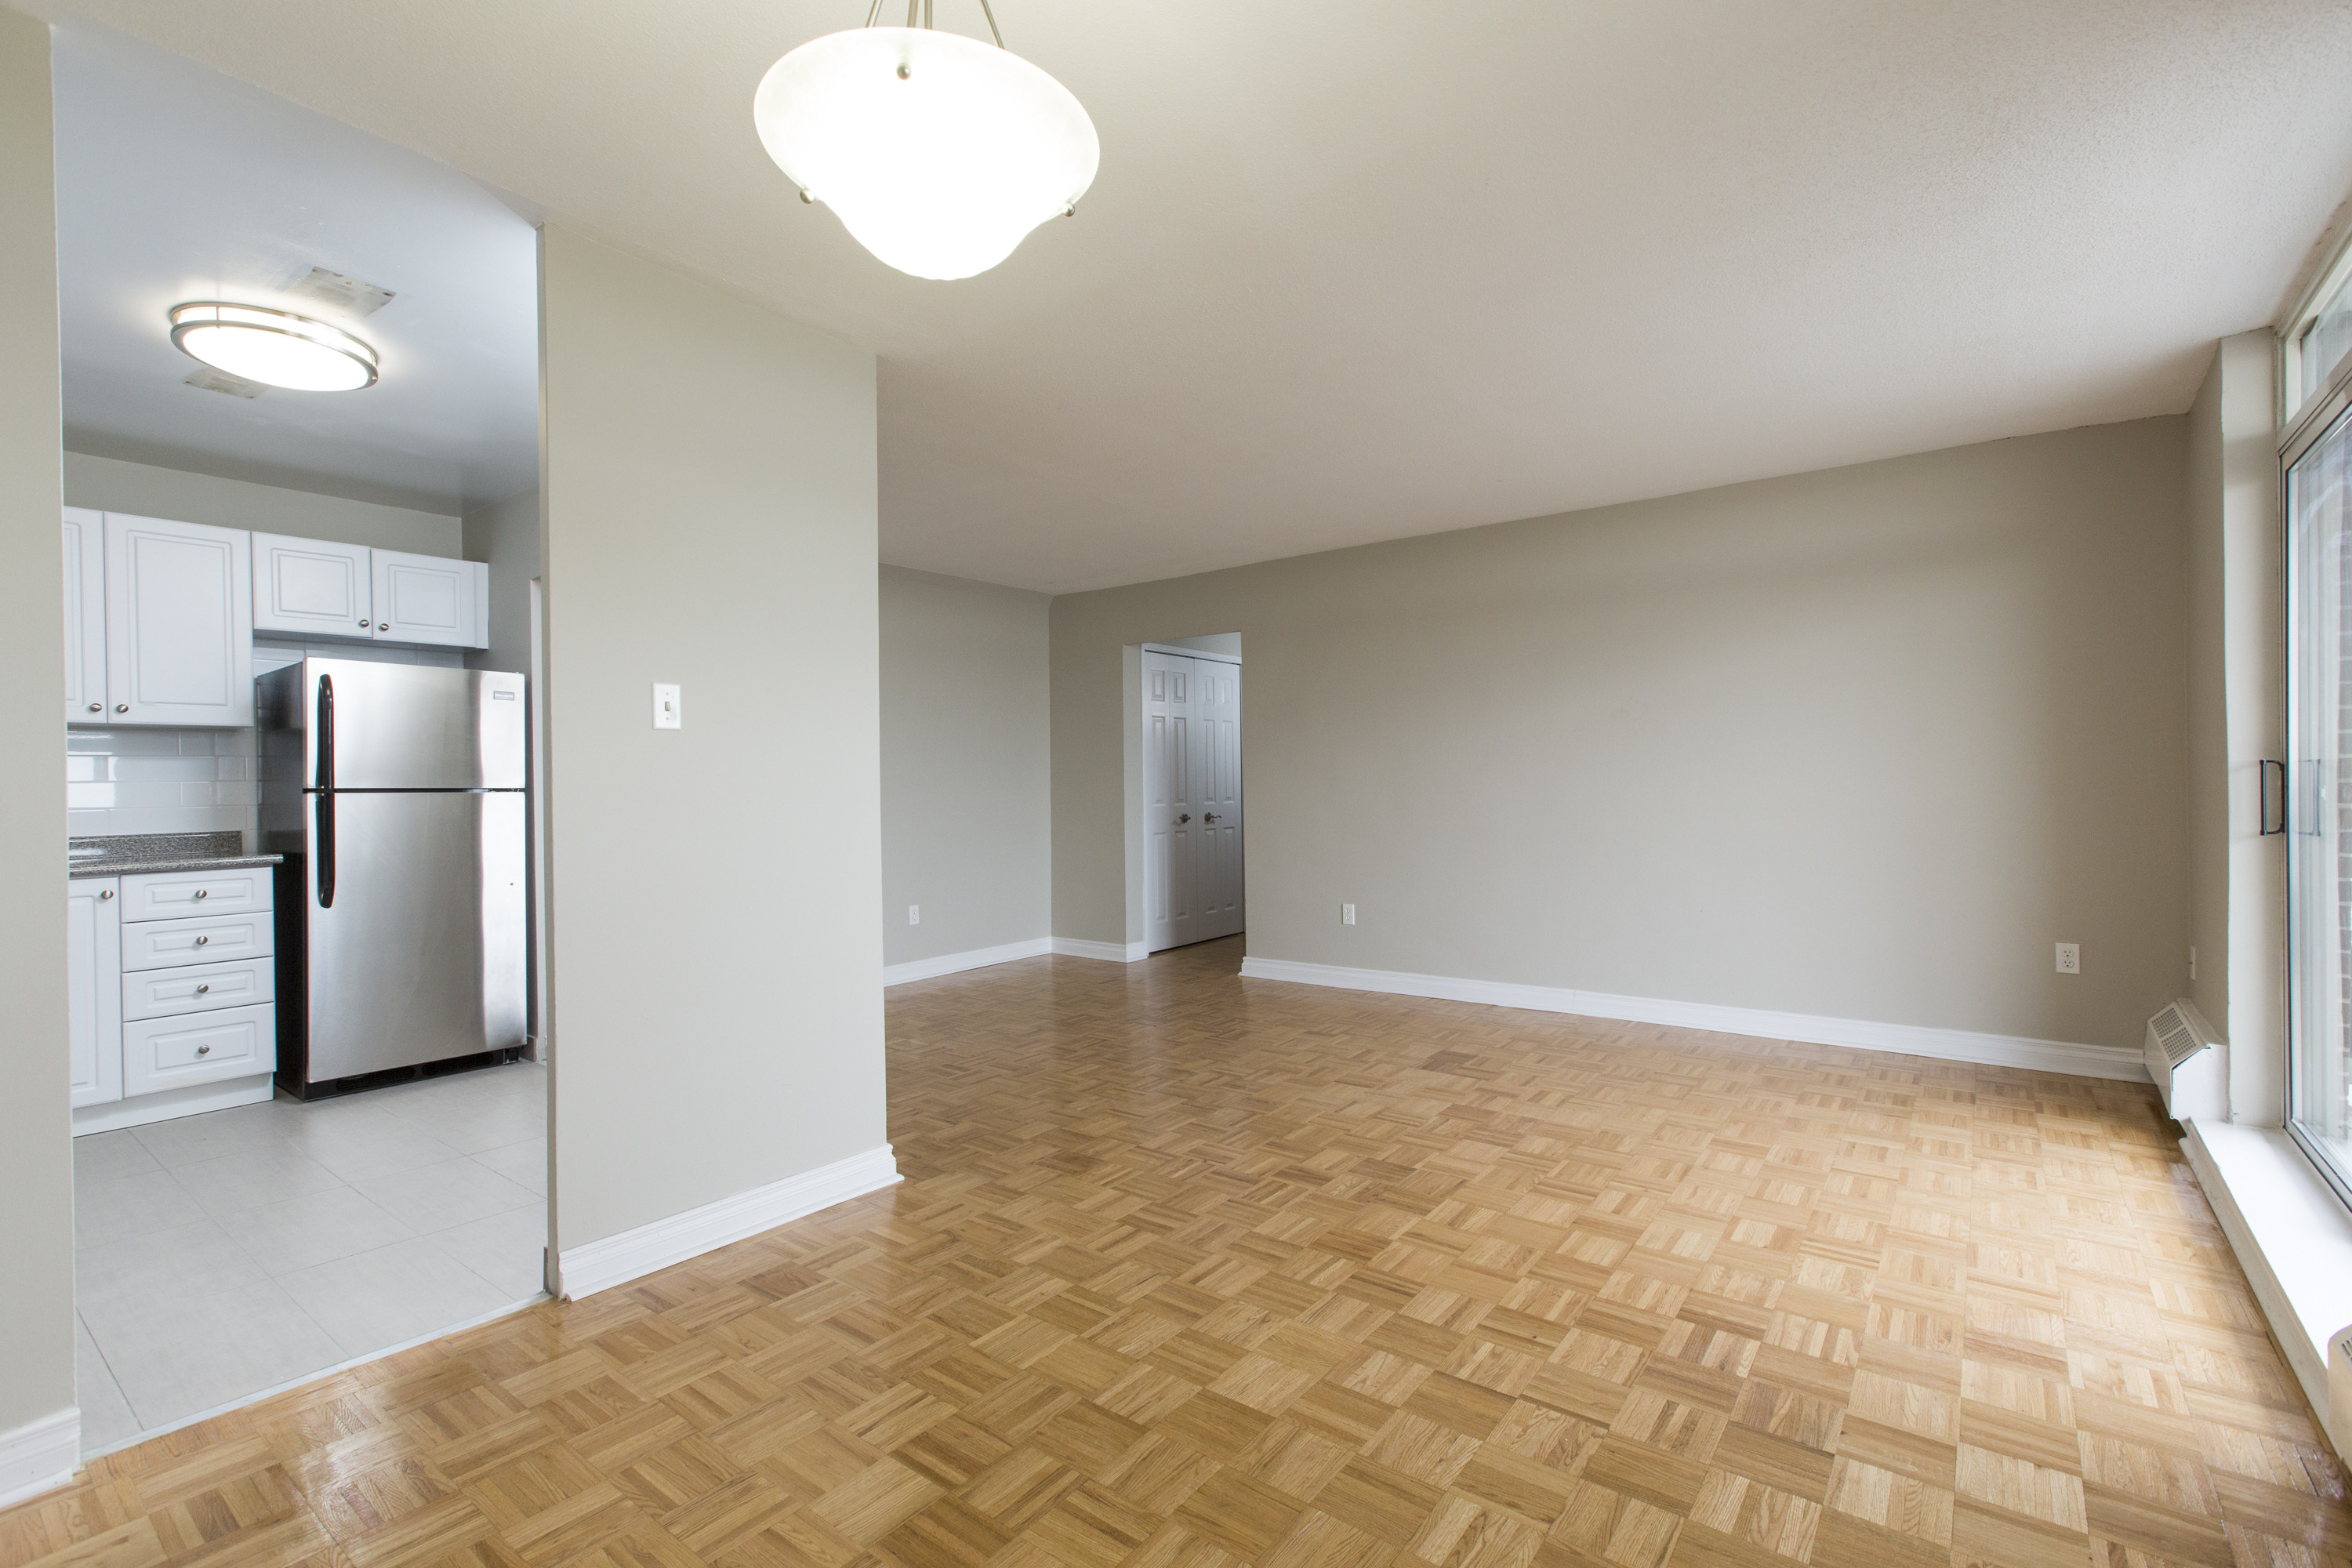 hardwood flooring etobicoke of toronto on apartments for rent regarding manage upload qresidentialtorontorentals com g6clrp